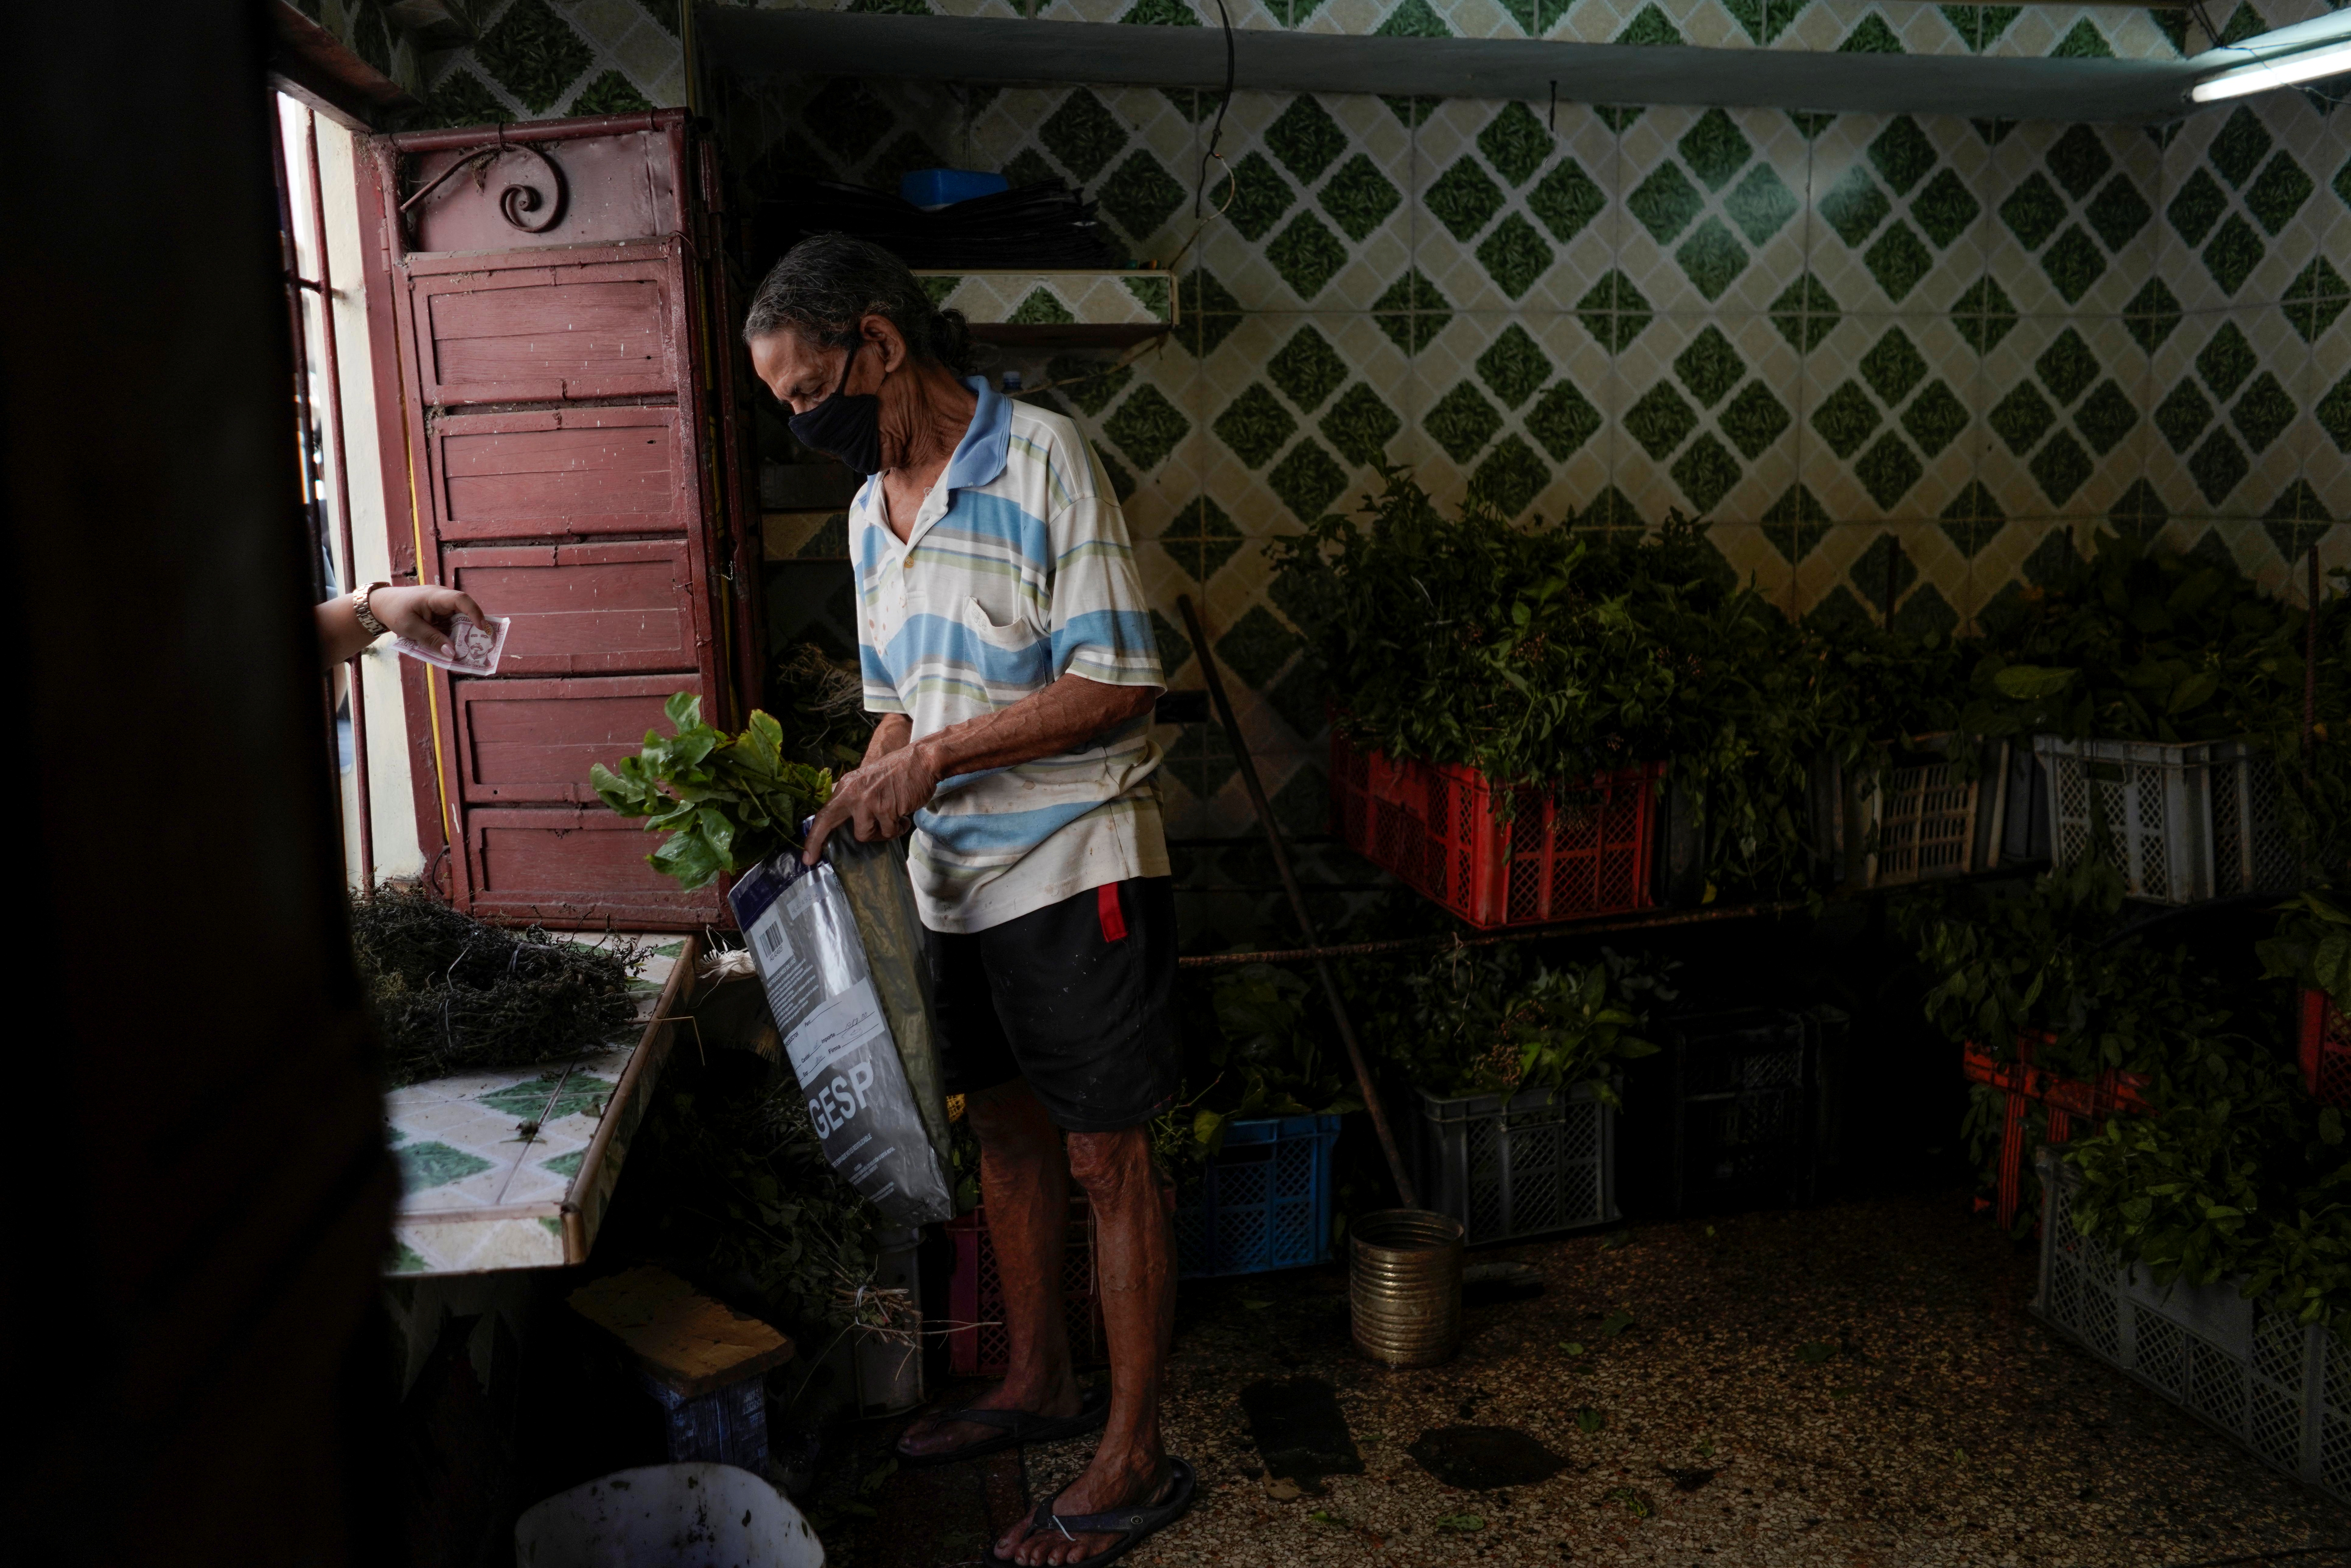 Florencio Chavez sells herbs for medicine in downtown Havana, Cuba, March 30, 2021. Picture taken on March 30, 2021. REUTERS/Alexandre Meneghini